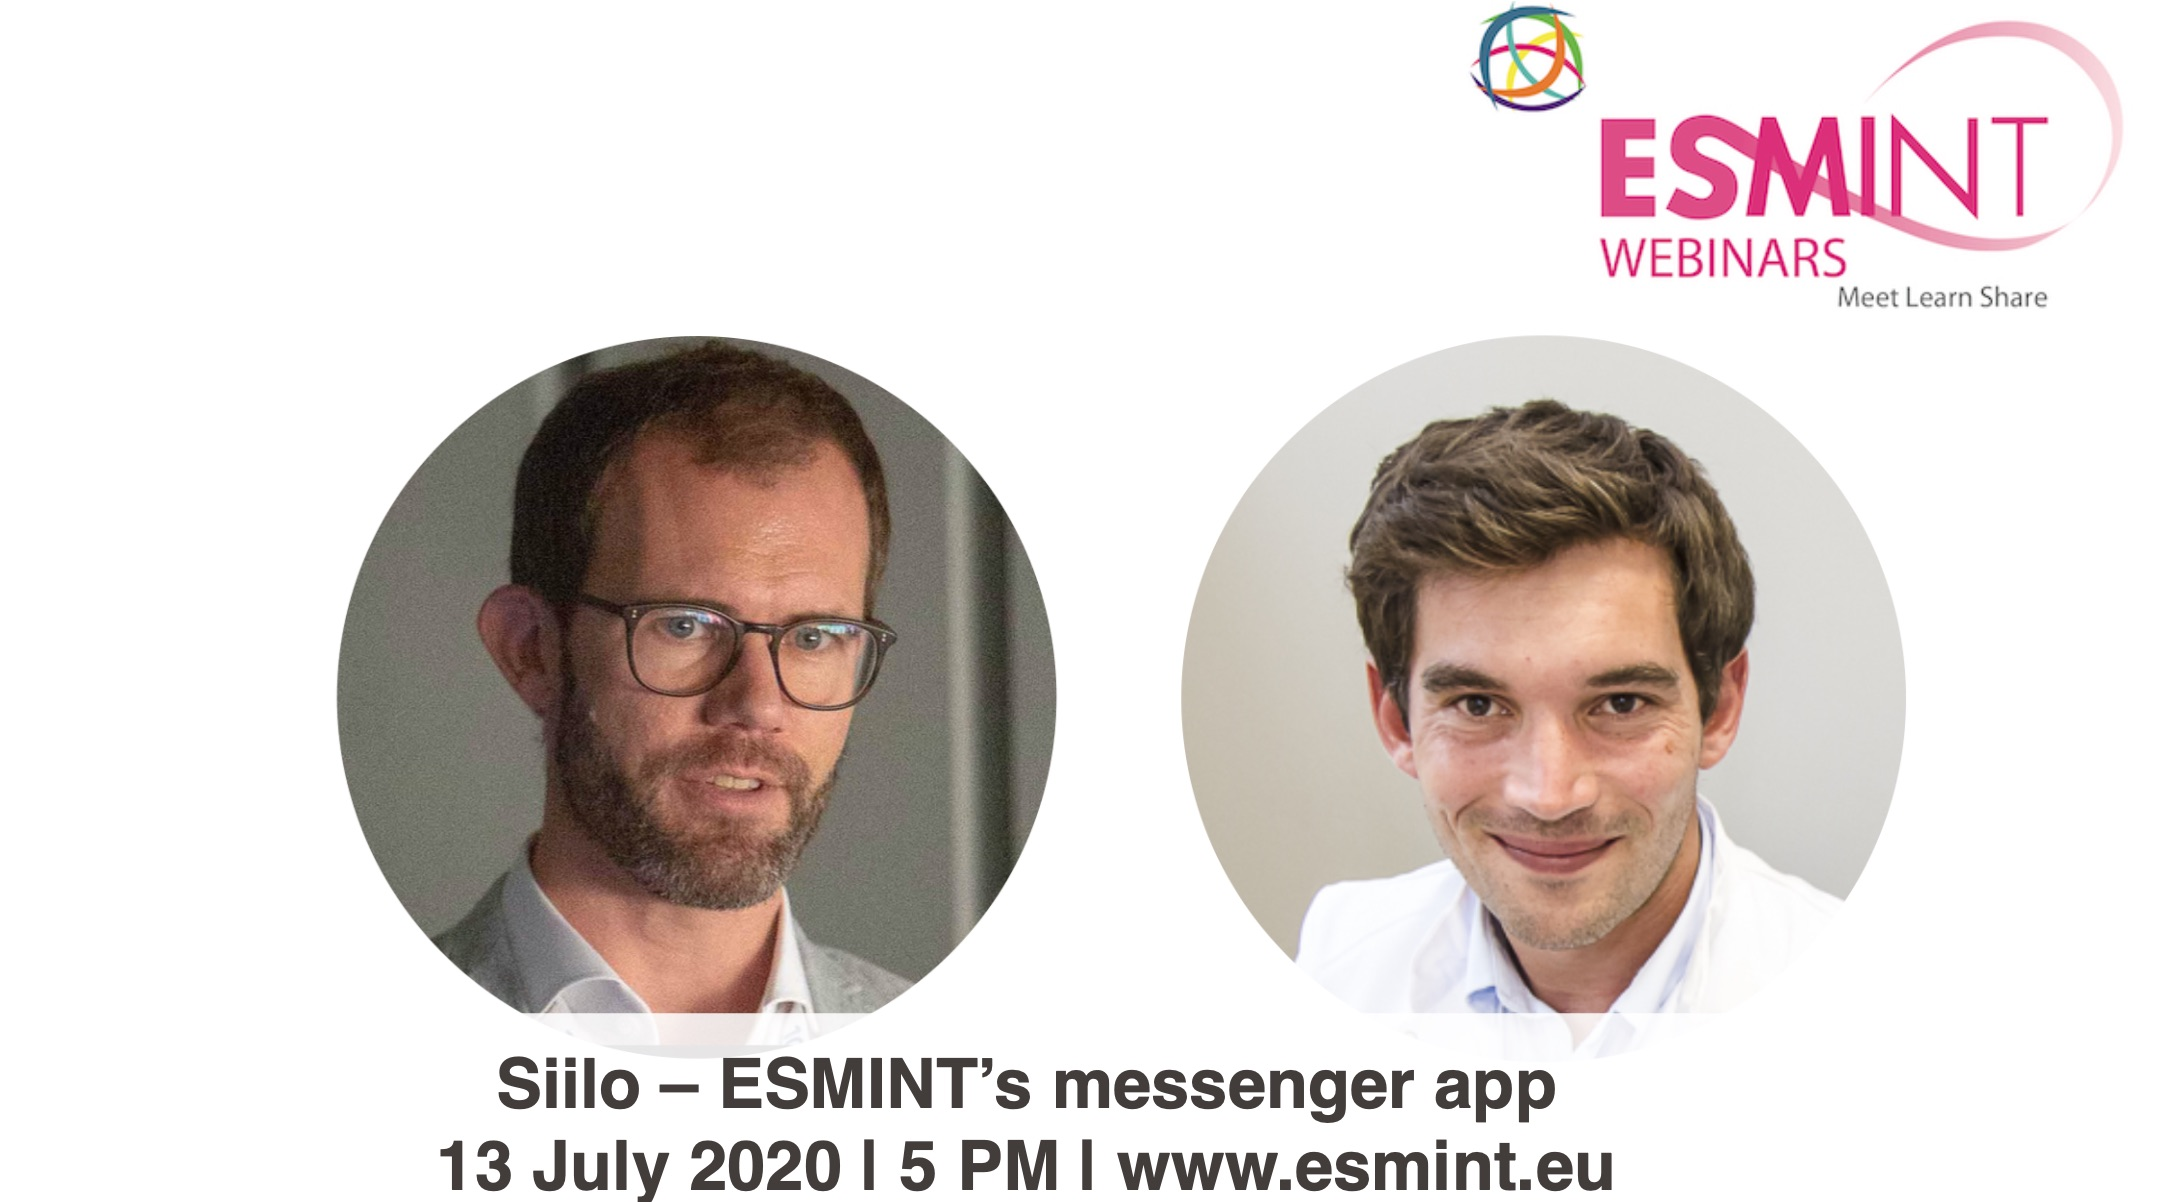 Webinar about Siilo with Buhk and Rouchaud.